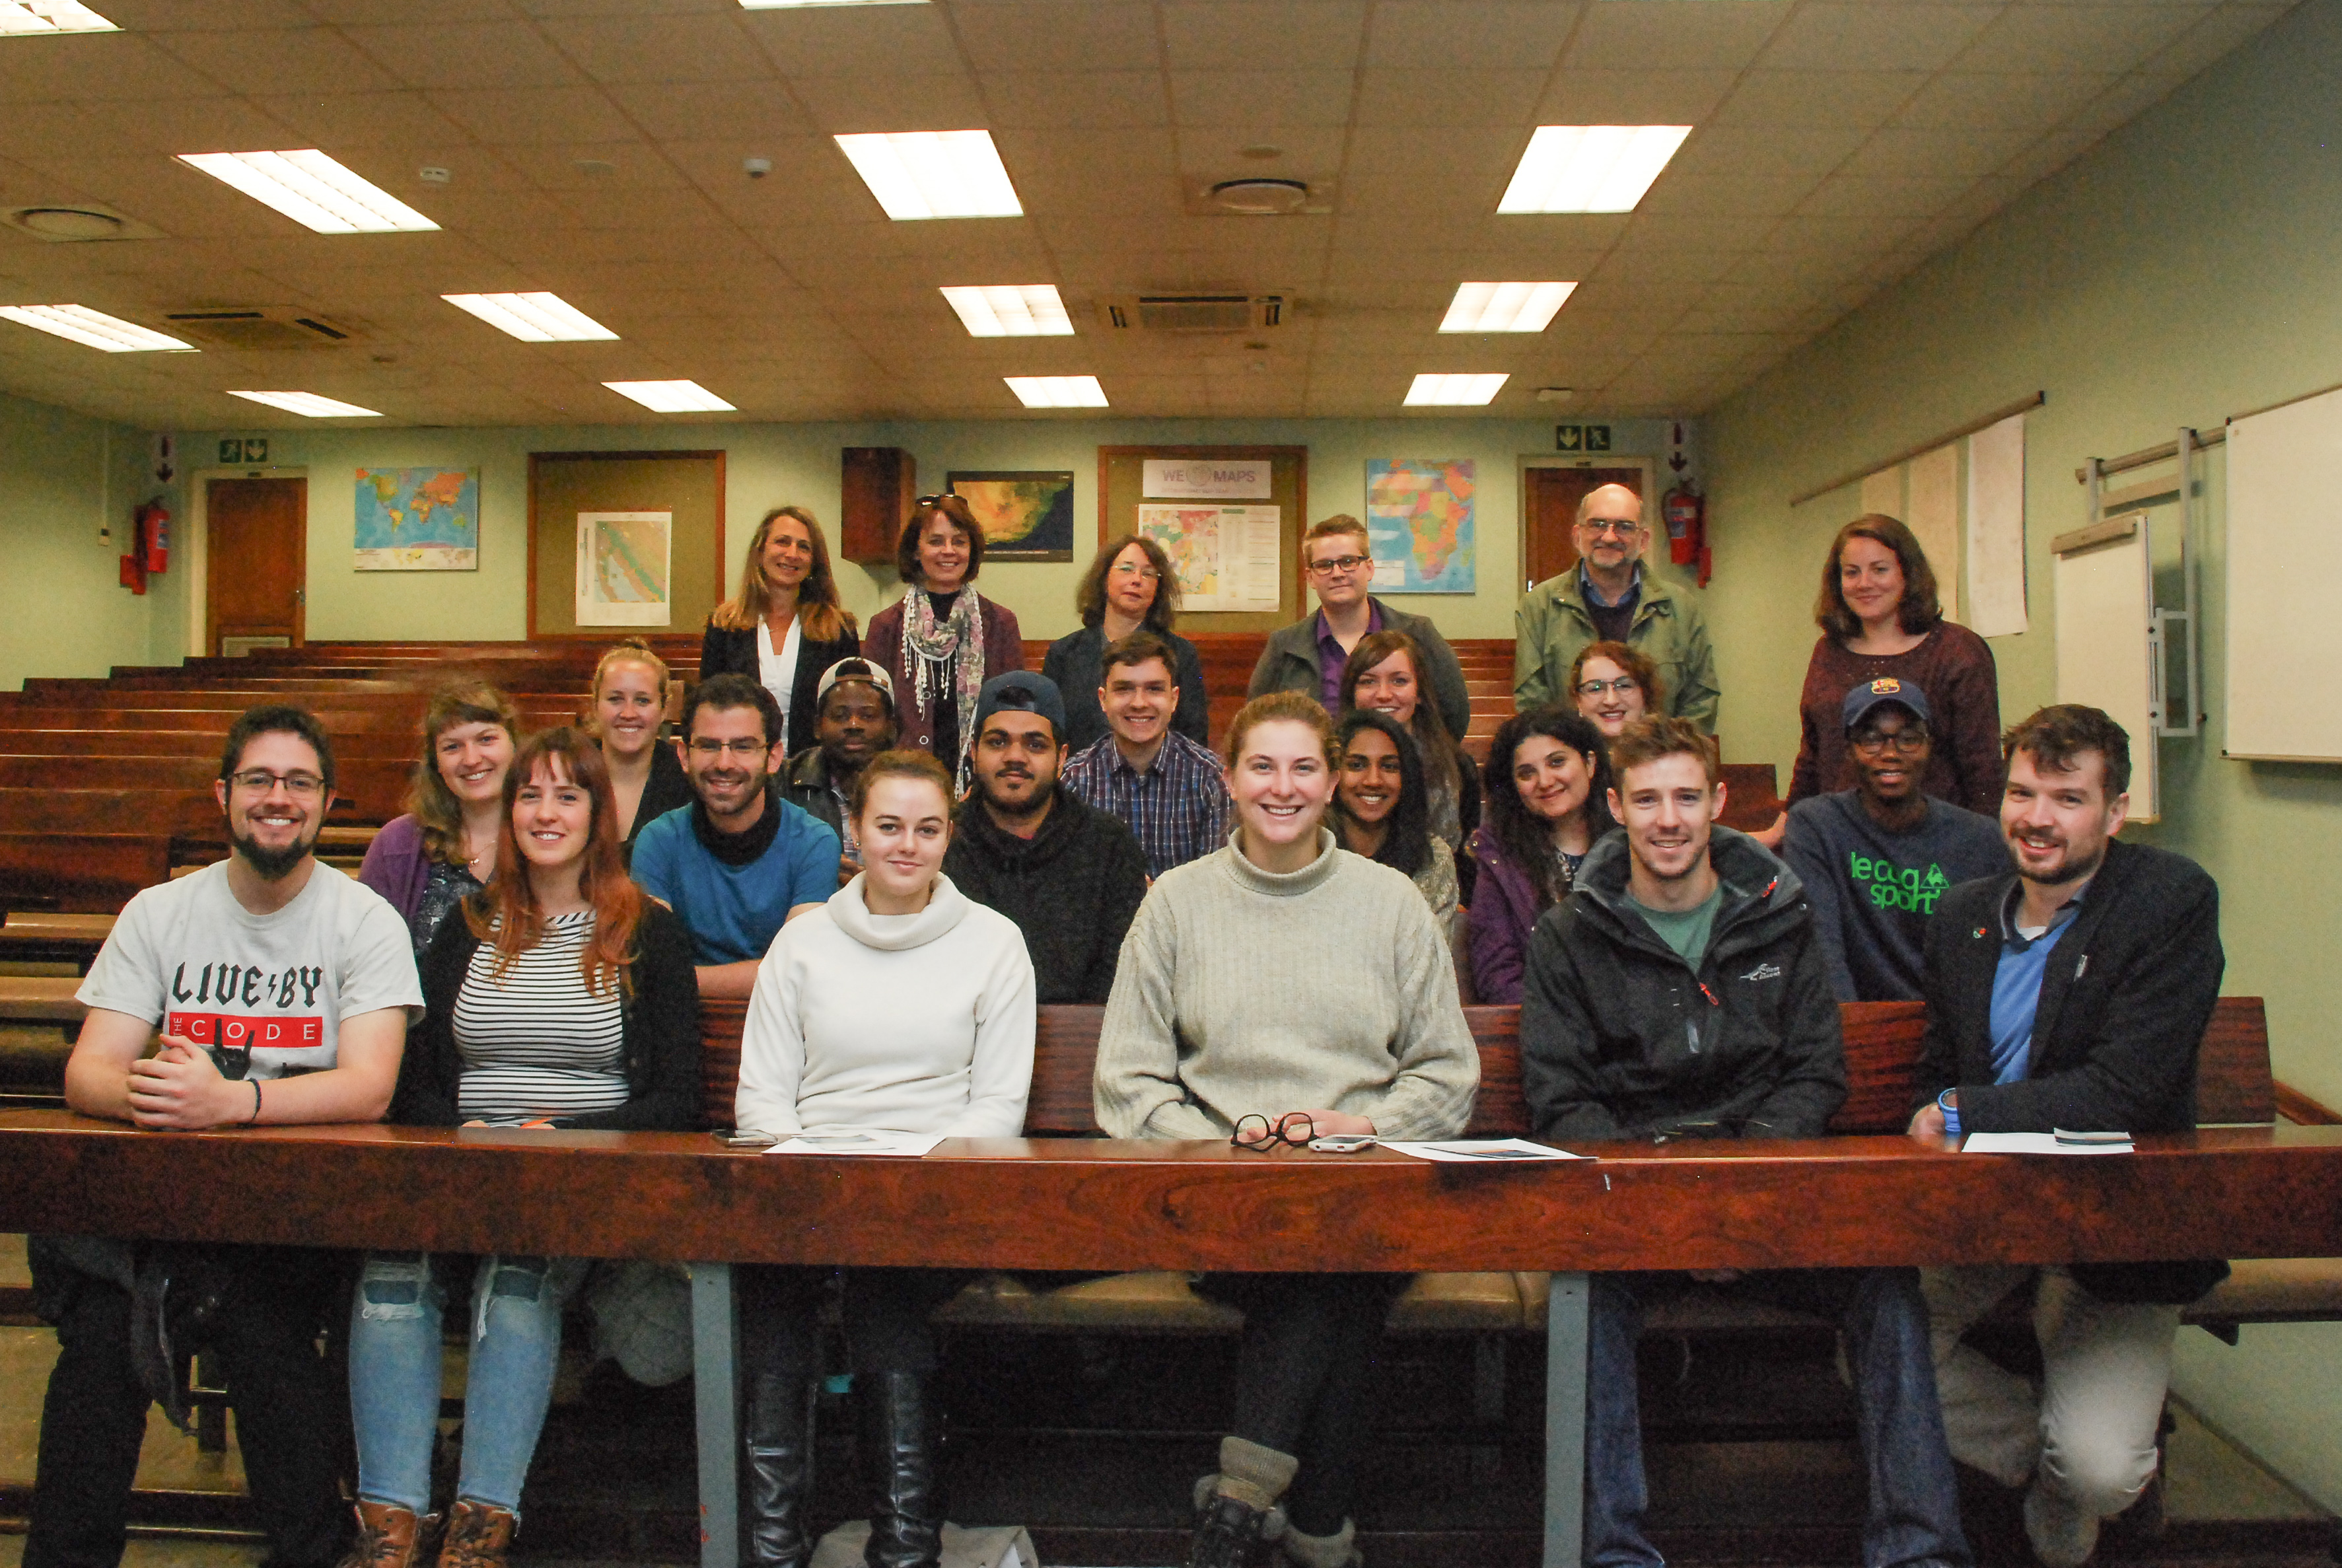 Student participants, with the programme coordinators and assisting staff members behind them, as well as Dr. Lisette Andreae, the German Embassy's Head of Science and Education (back row left).